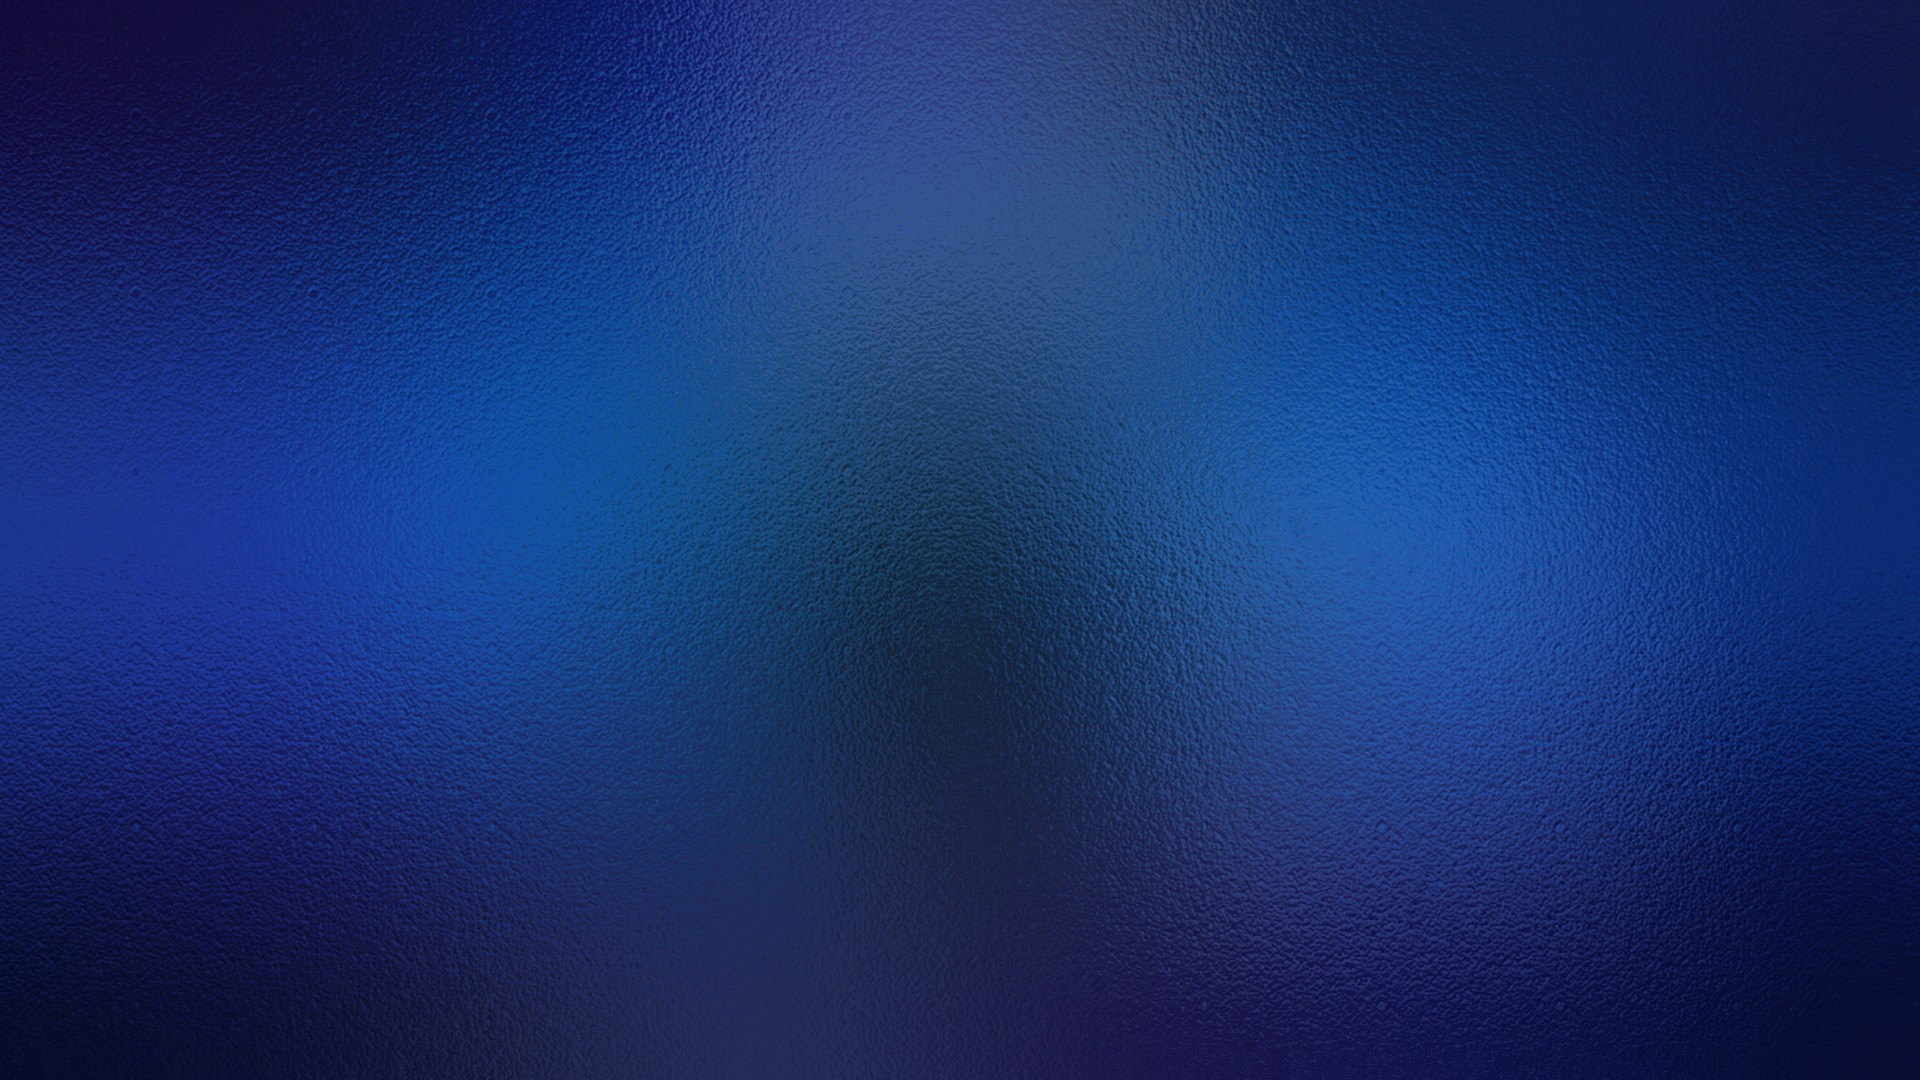 bright blue wallpaper  Blue dark bright reflections wallpaper | 1920x1080 | 193001 ...